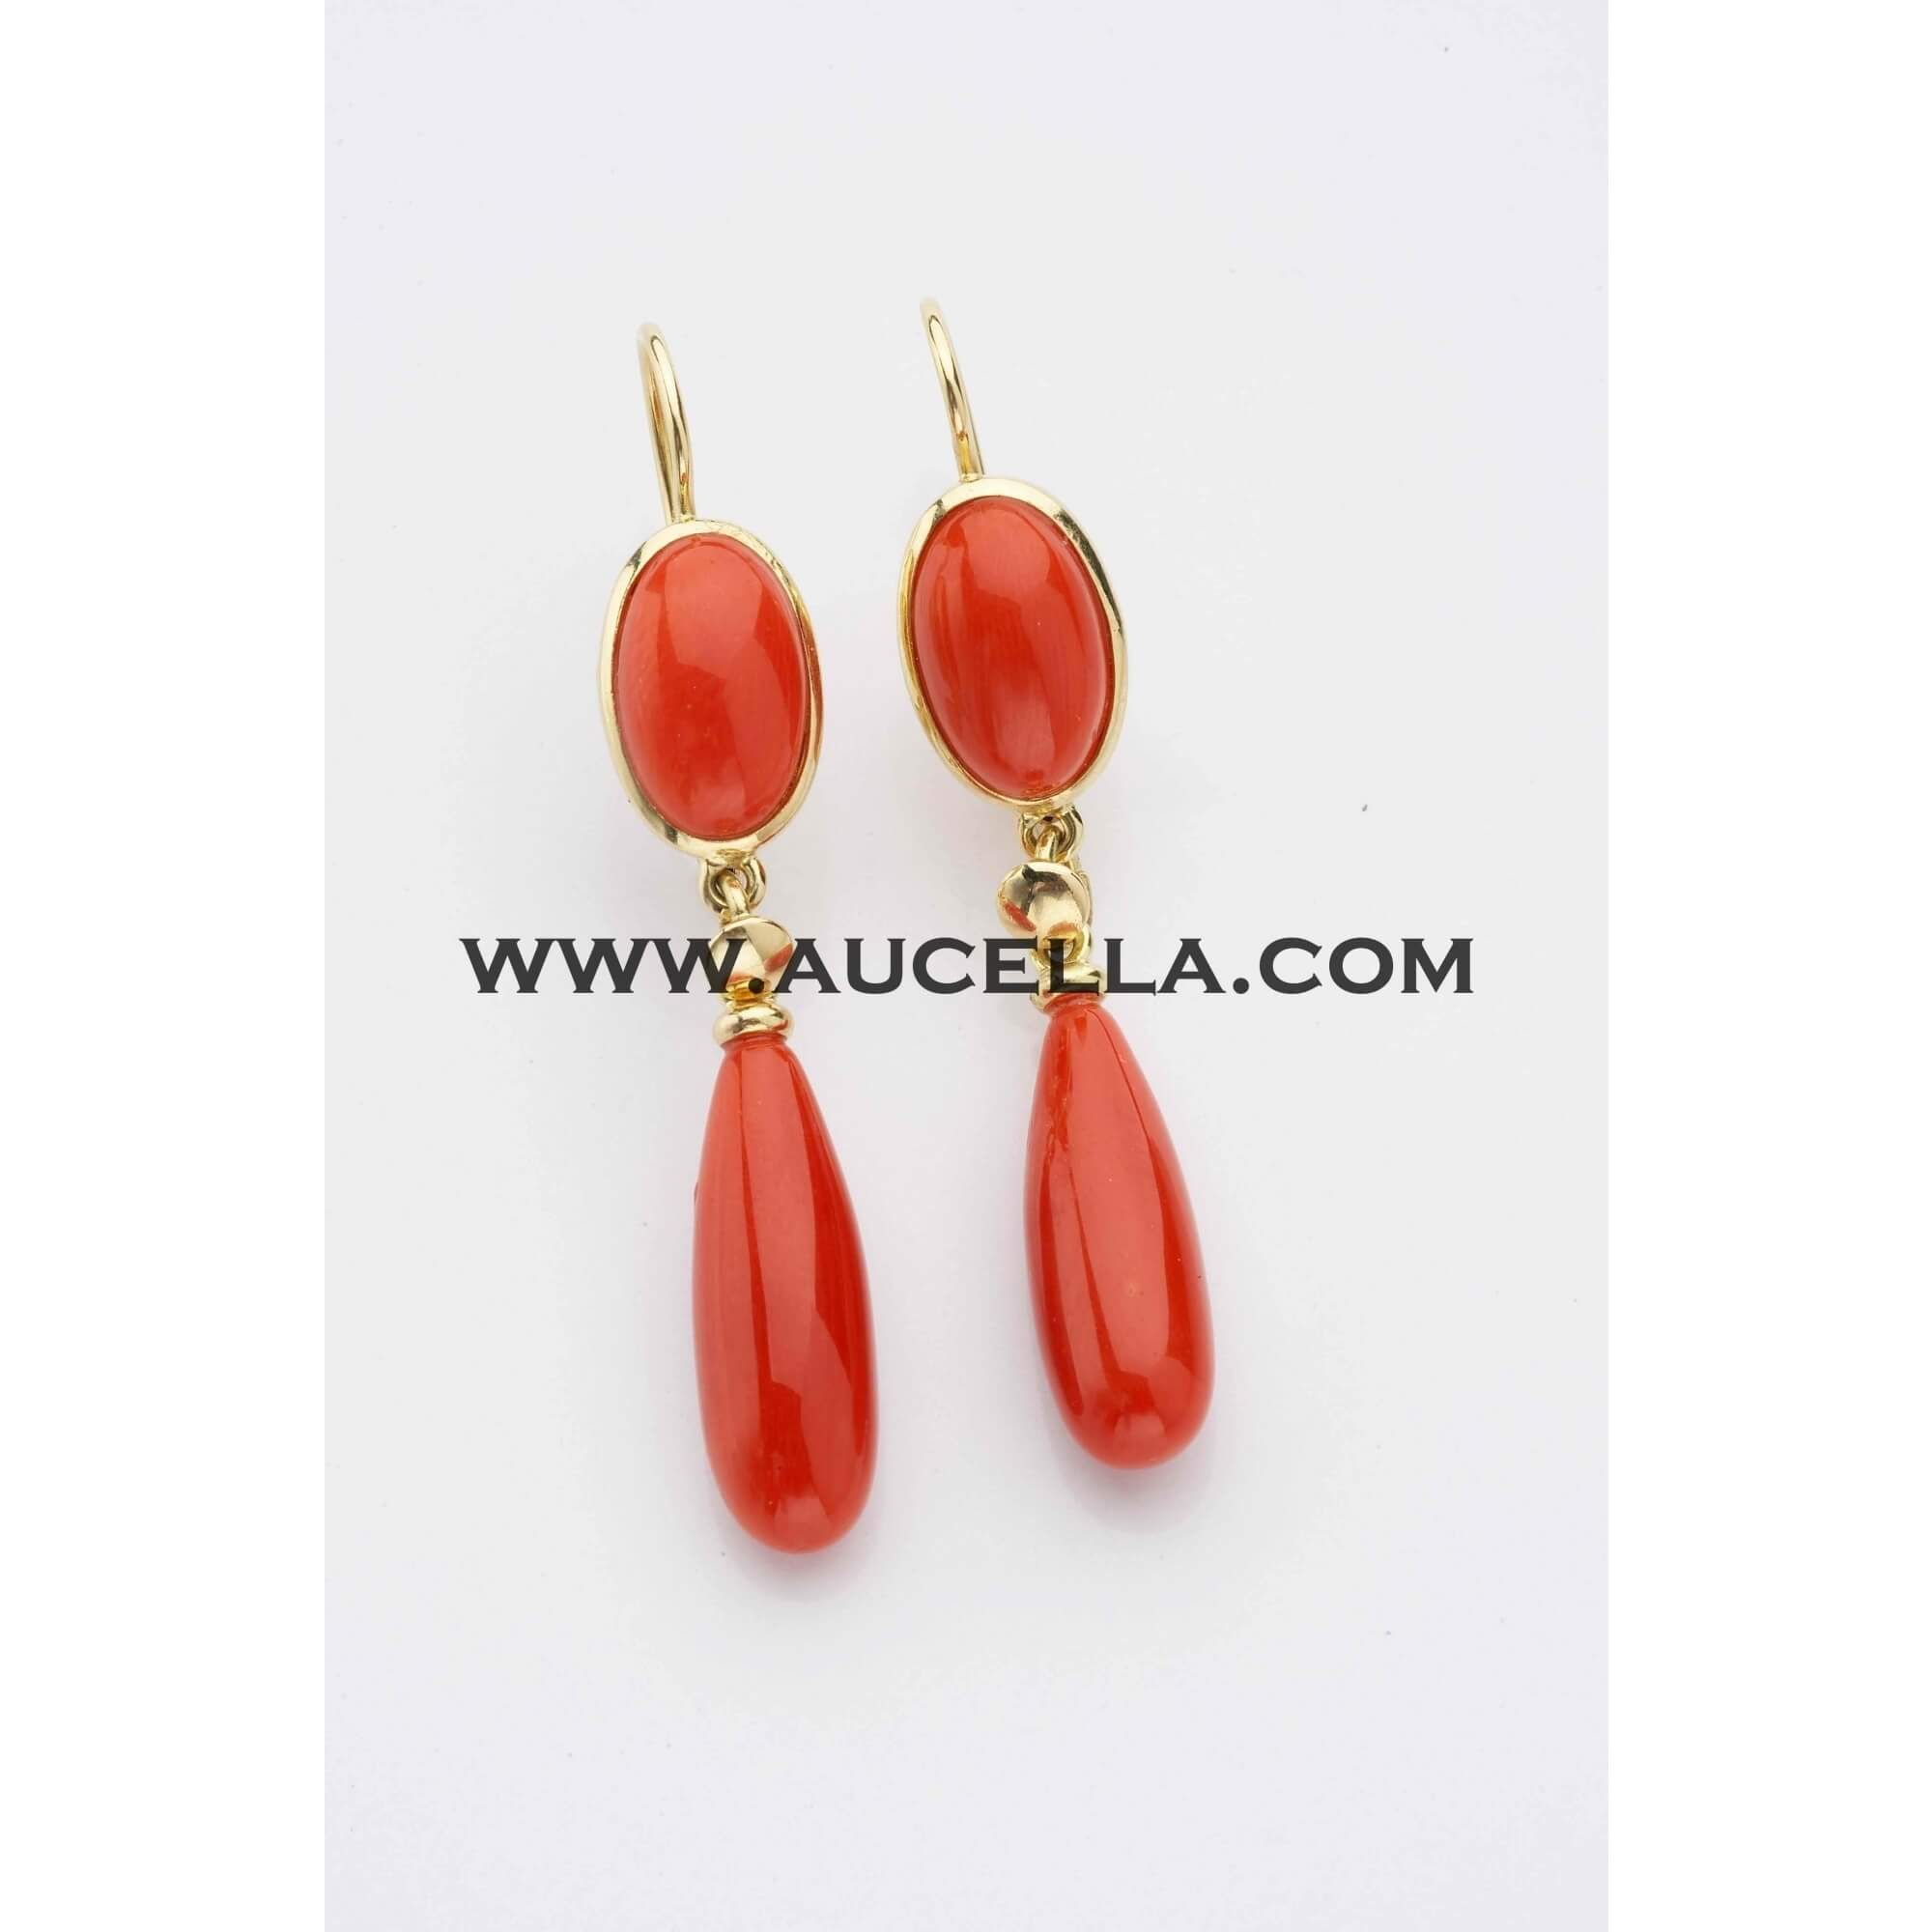 Classic style earrings set in gold with coral drops